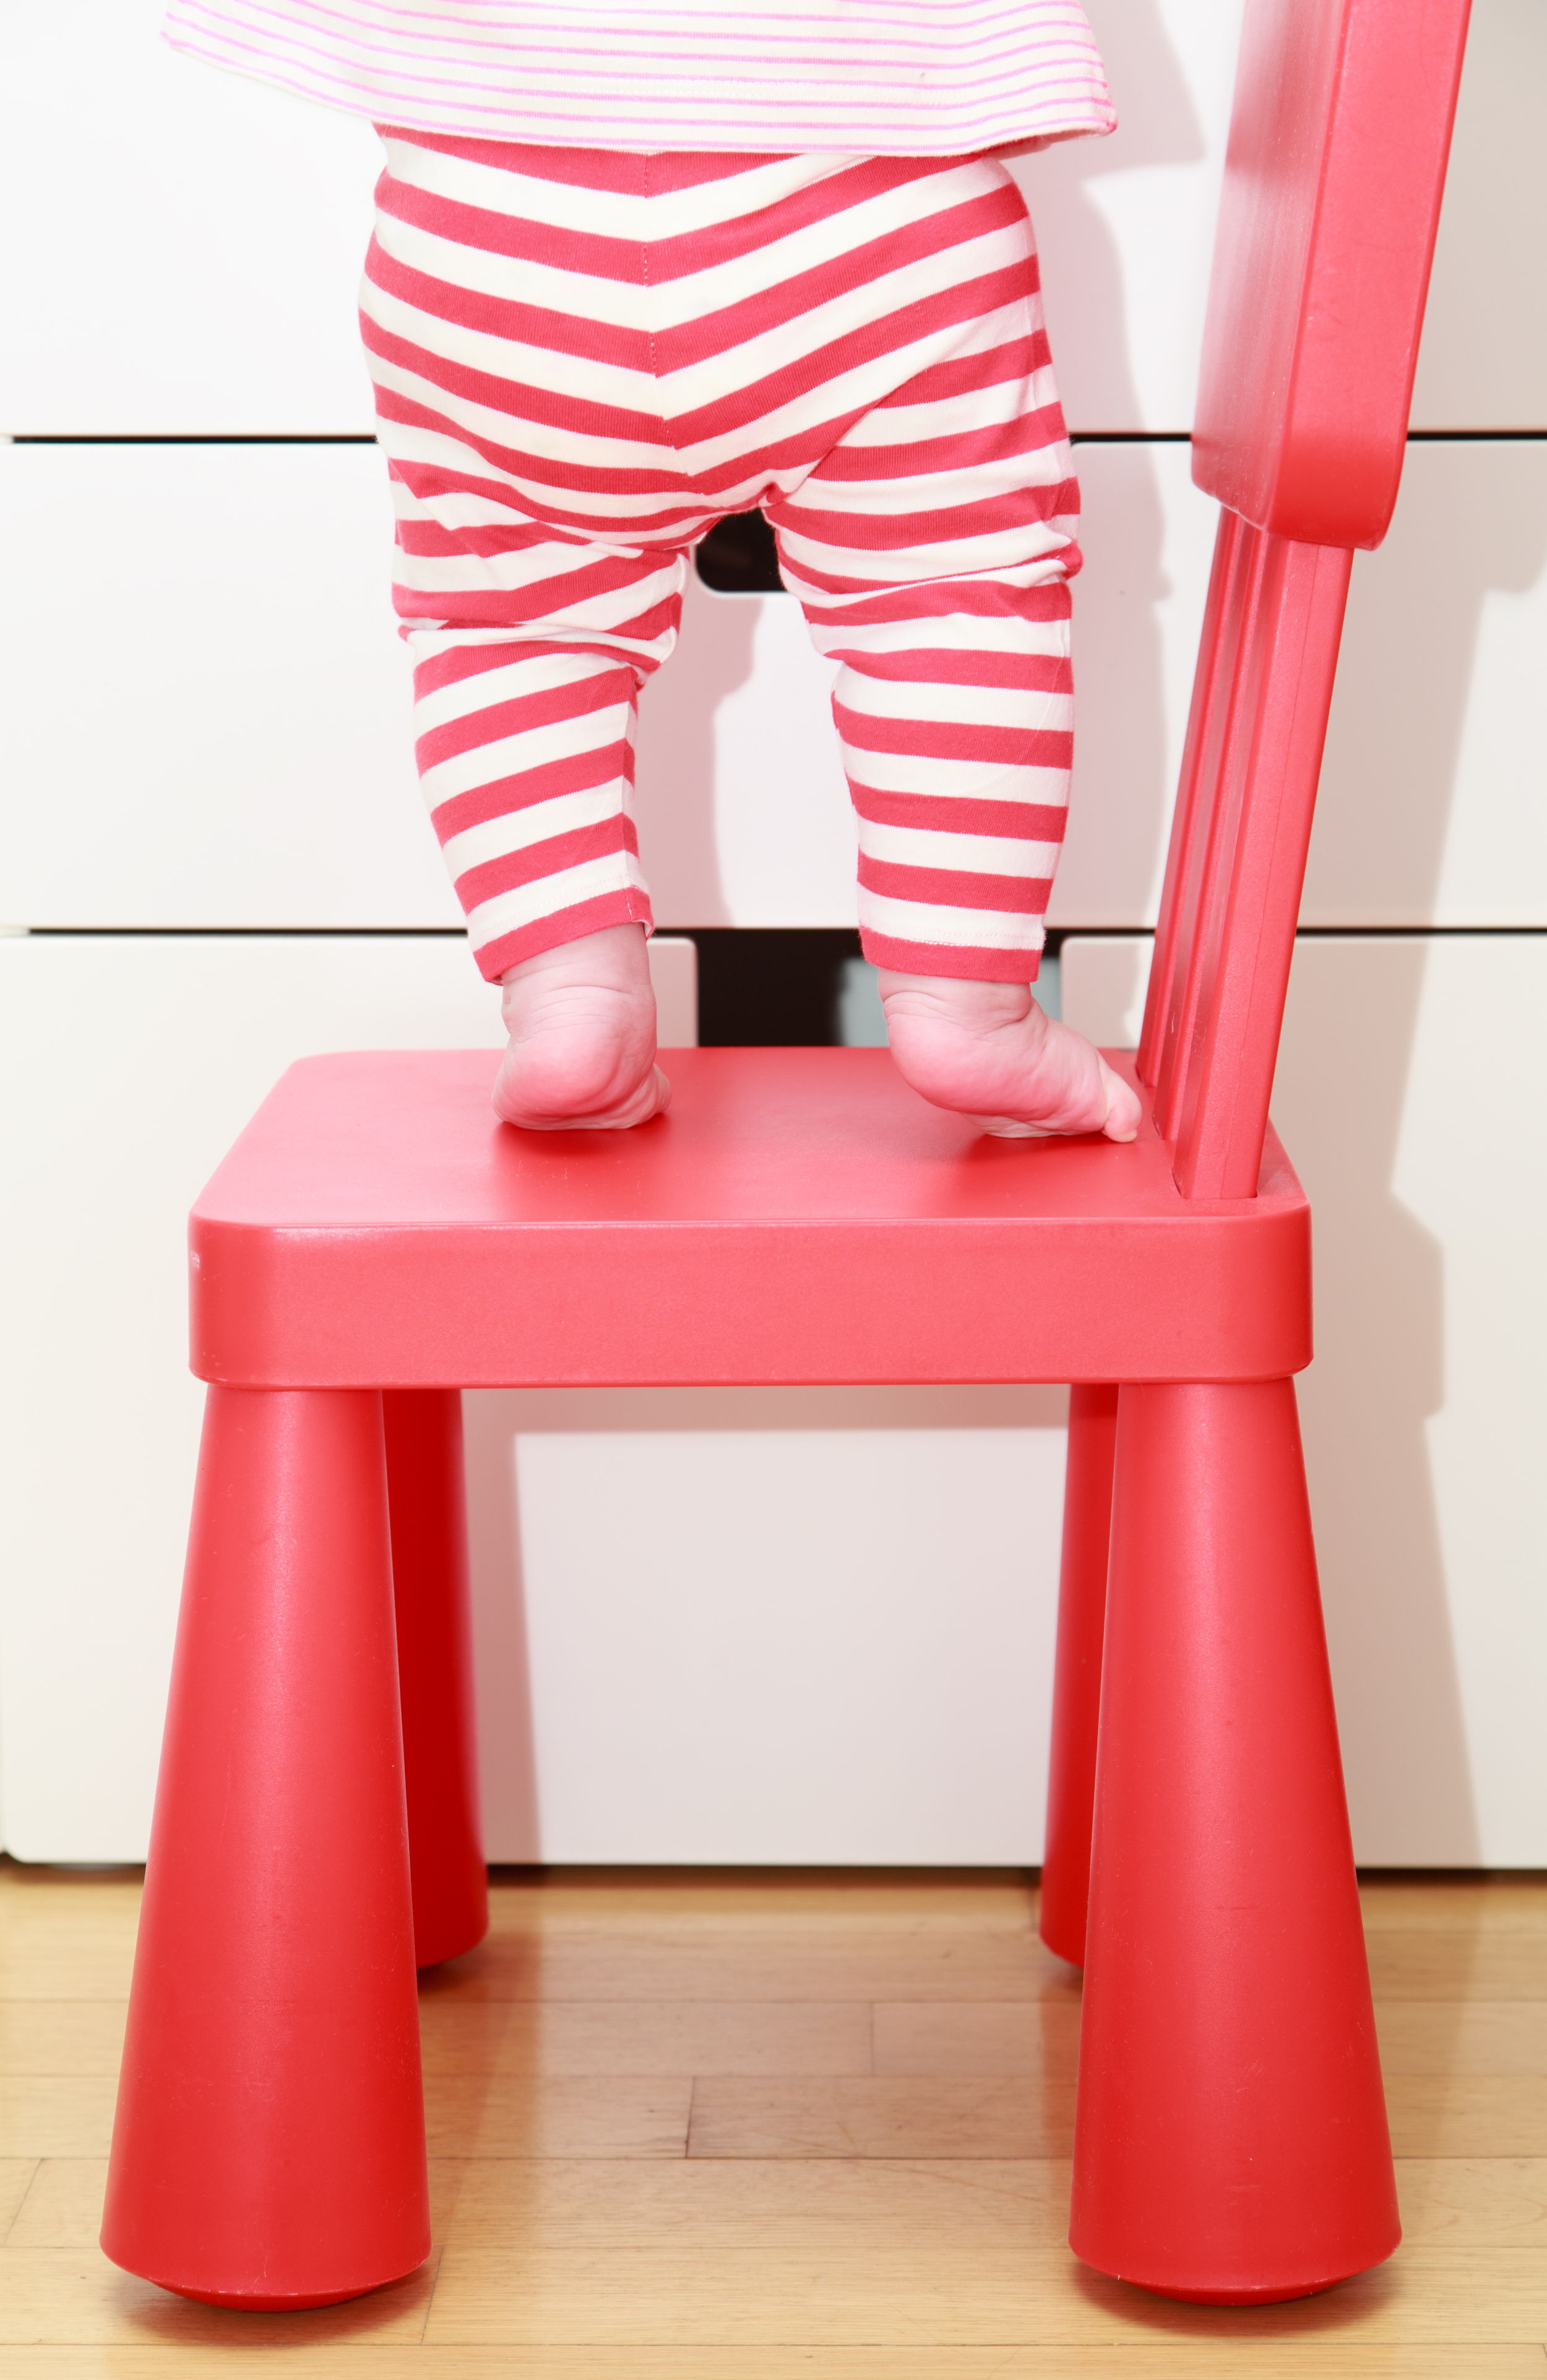 Proofed Baby Safety, Baby Proofing Tips For Climbing Babies, Childproofing  Tips, Child Proofing